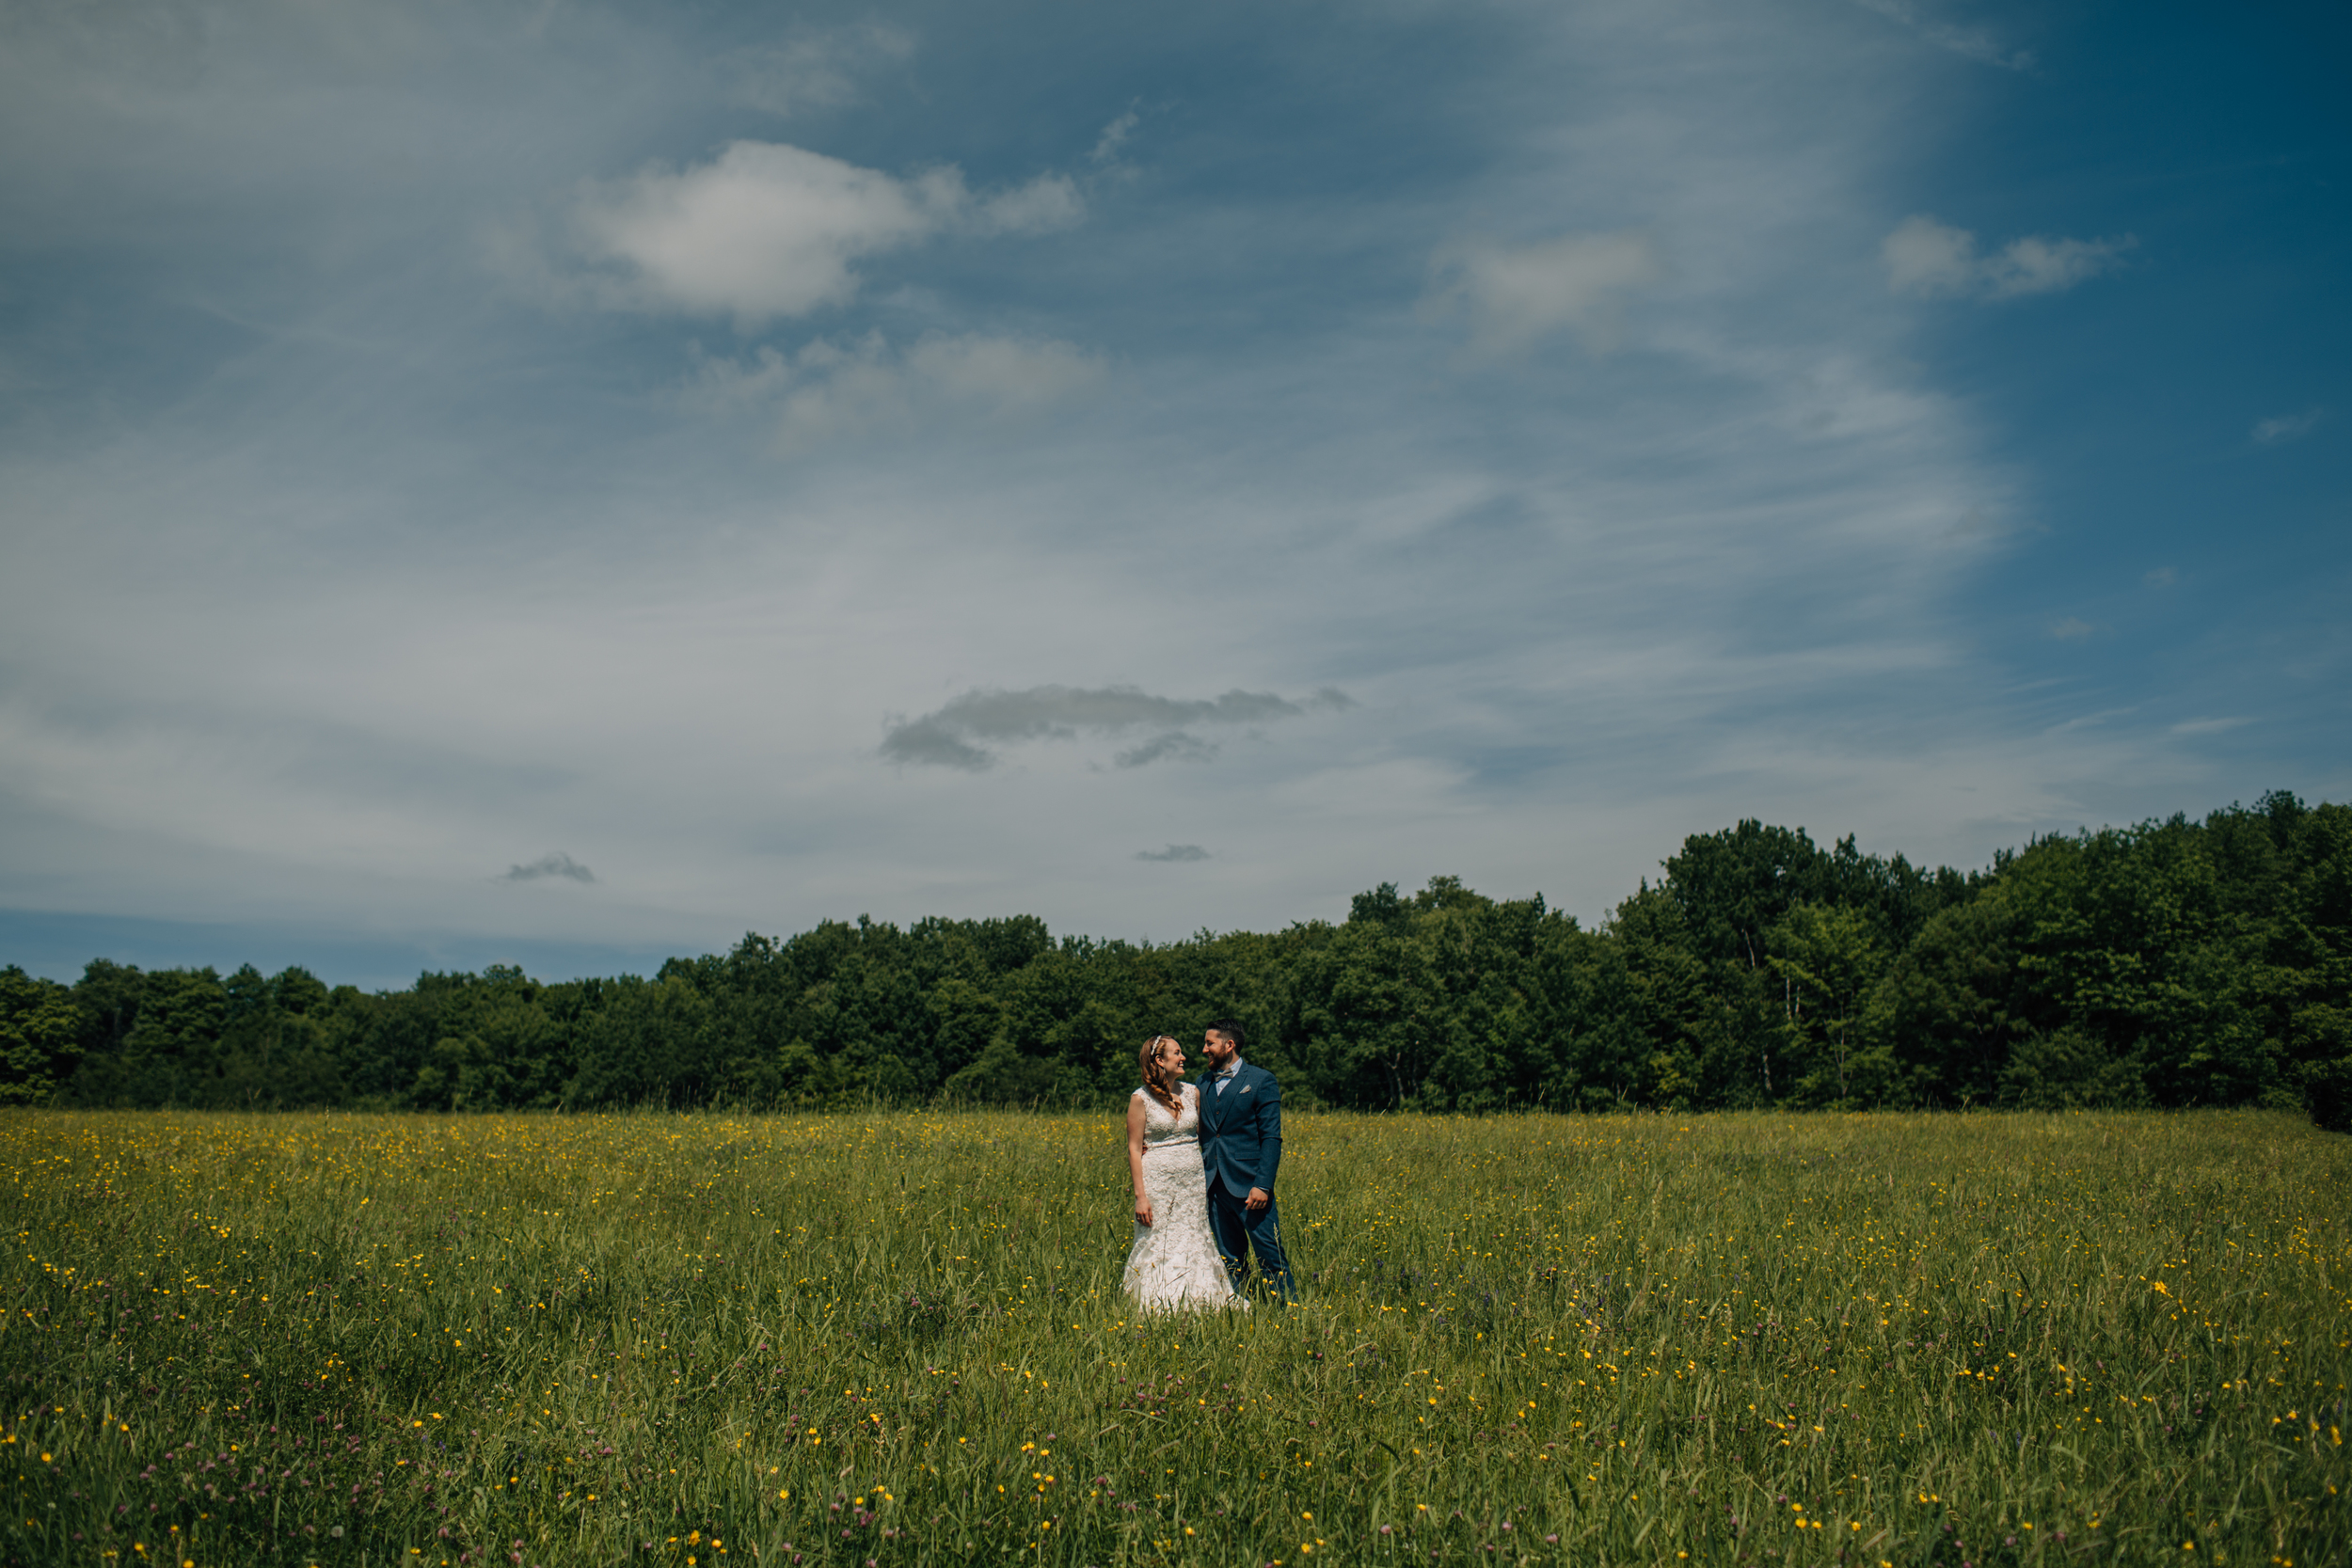 KELLIandBRADweddingJUNE2015 - portraits (91 of 142).jpg